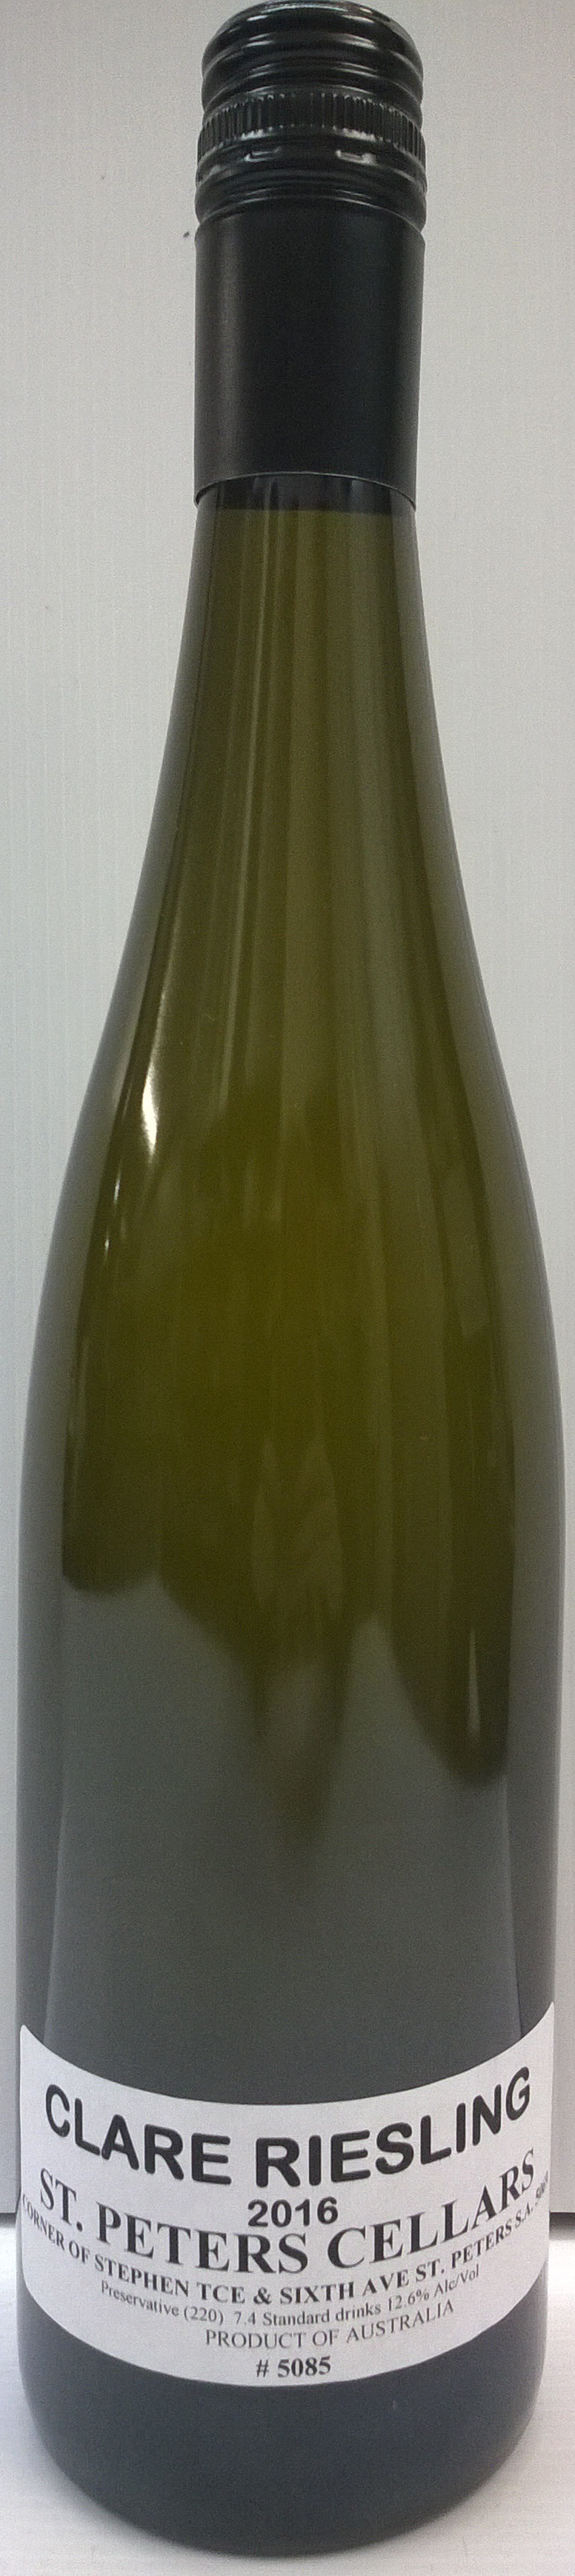 Cleanskin Clare Riesling